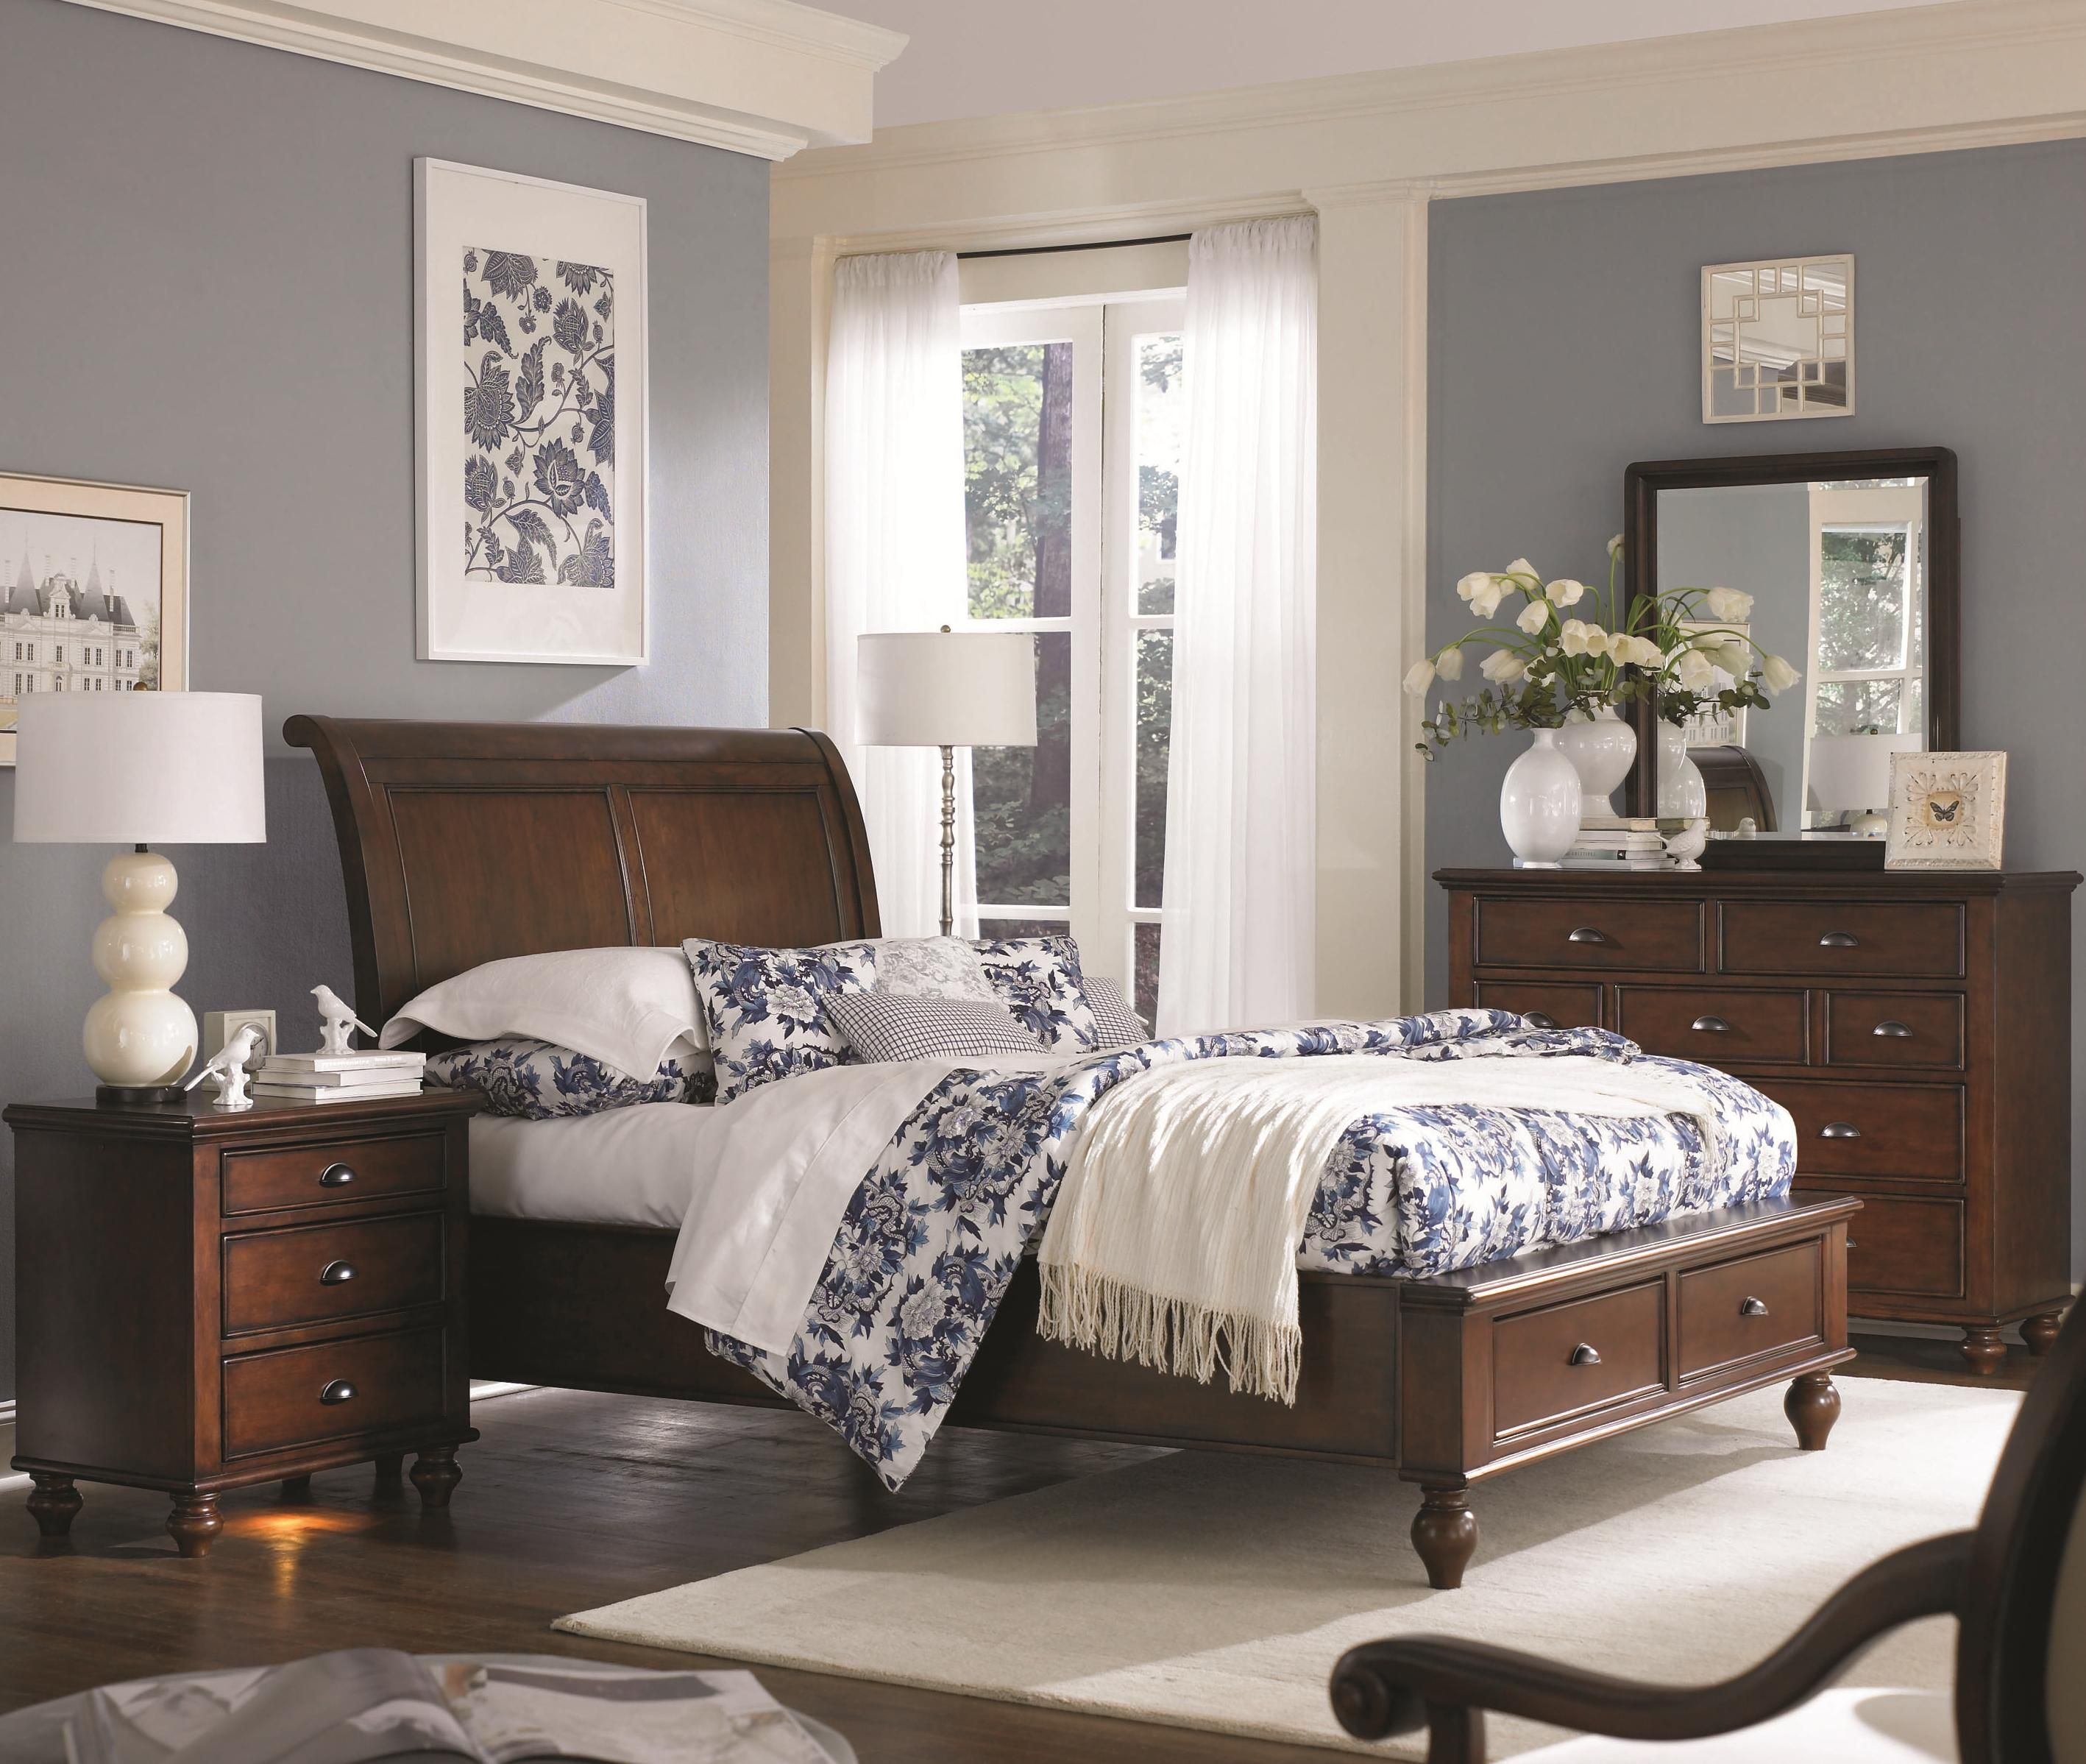 Madison Brh By Aspenhome Old Brick Furniture Aspenhome Madison Dealer New York Cherry Furniture Cherry Bedroom Furniture Cherry Wood Furniture